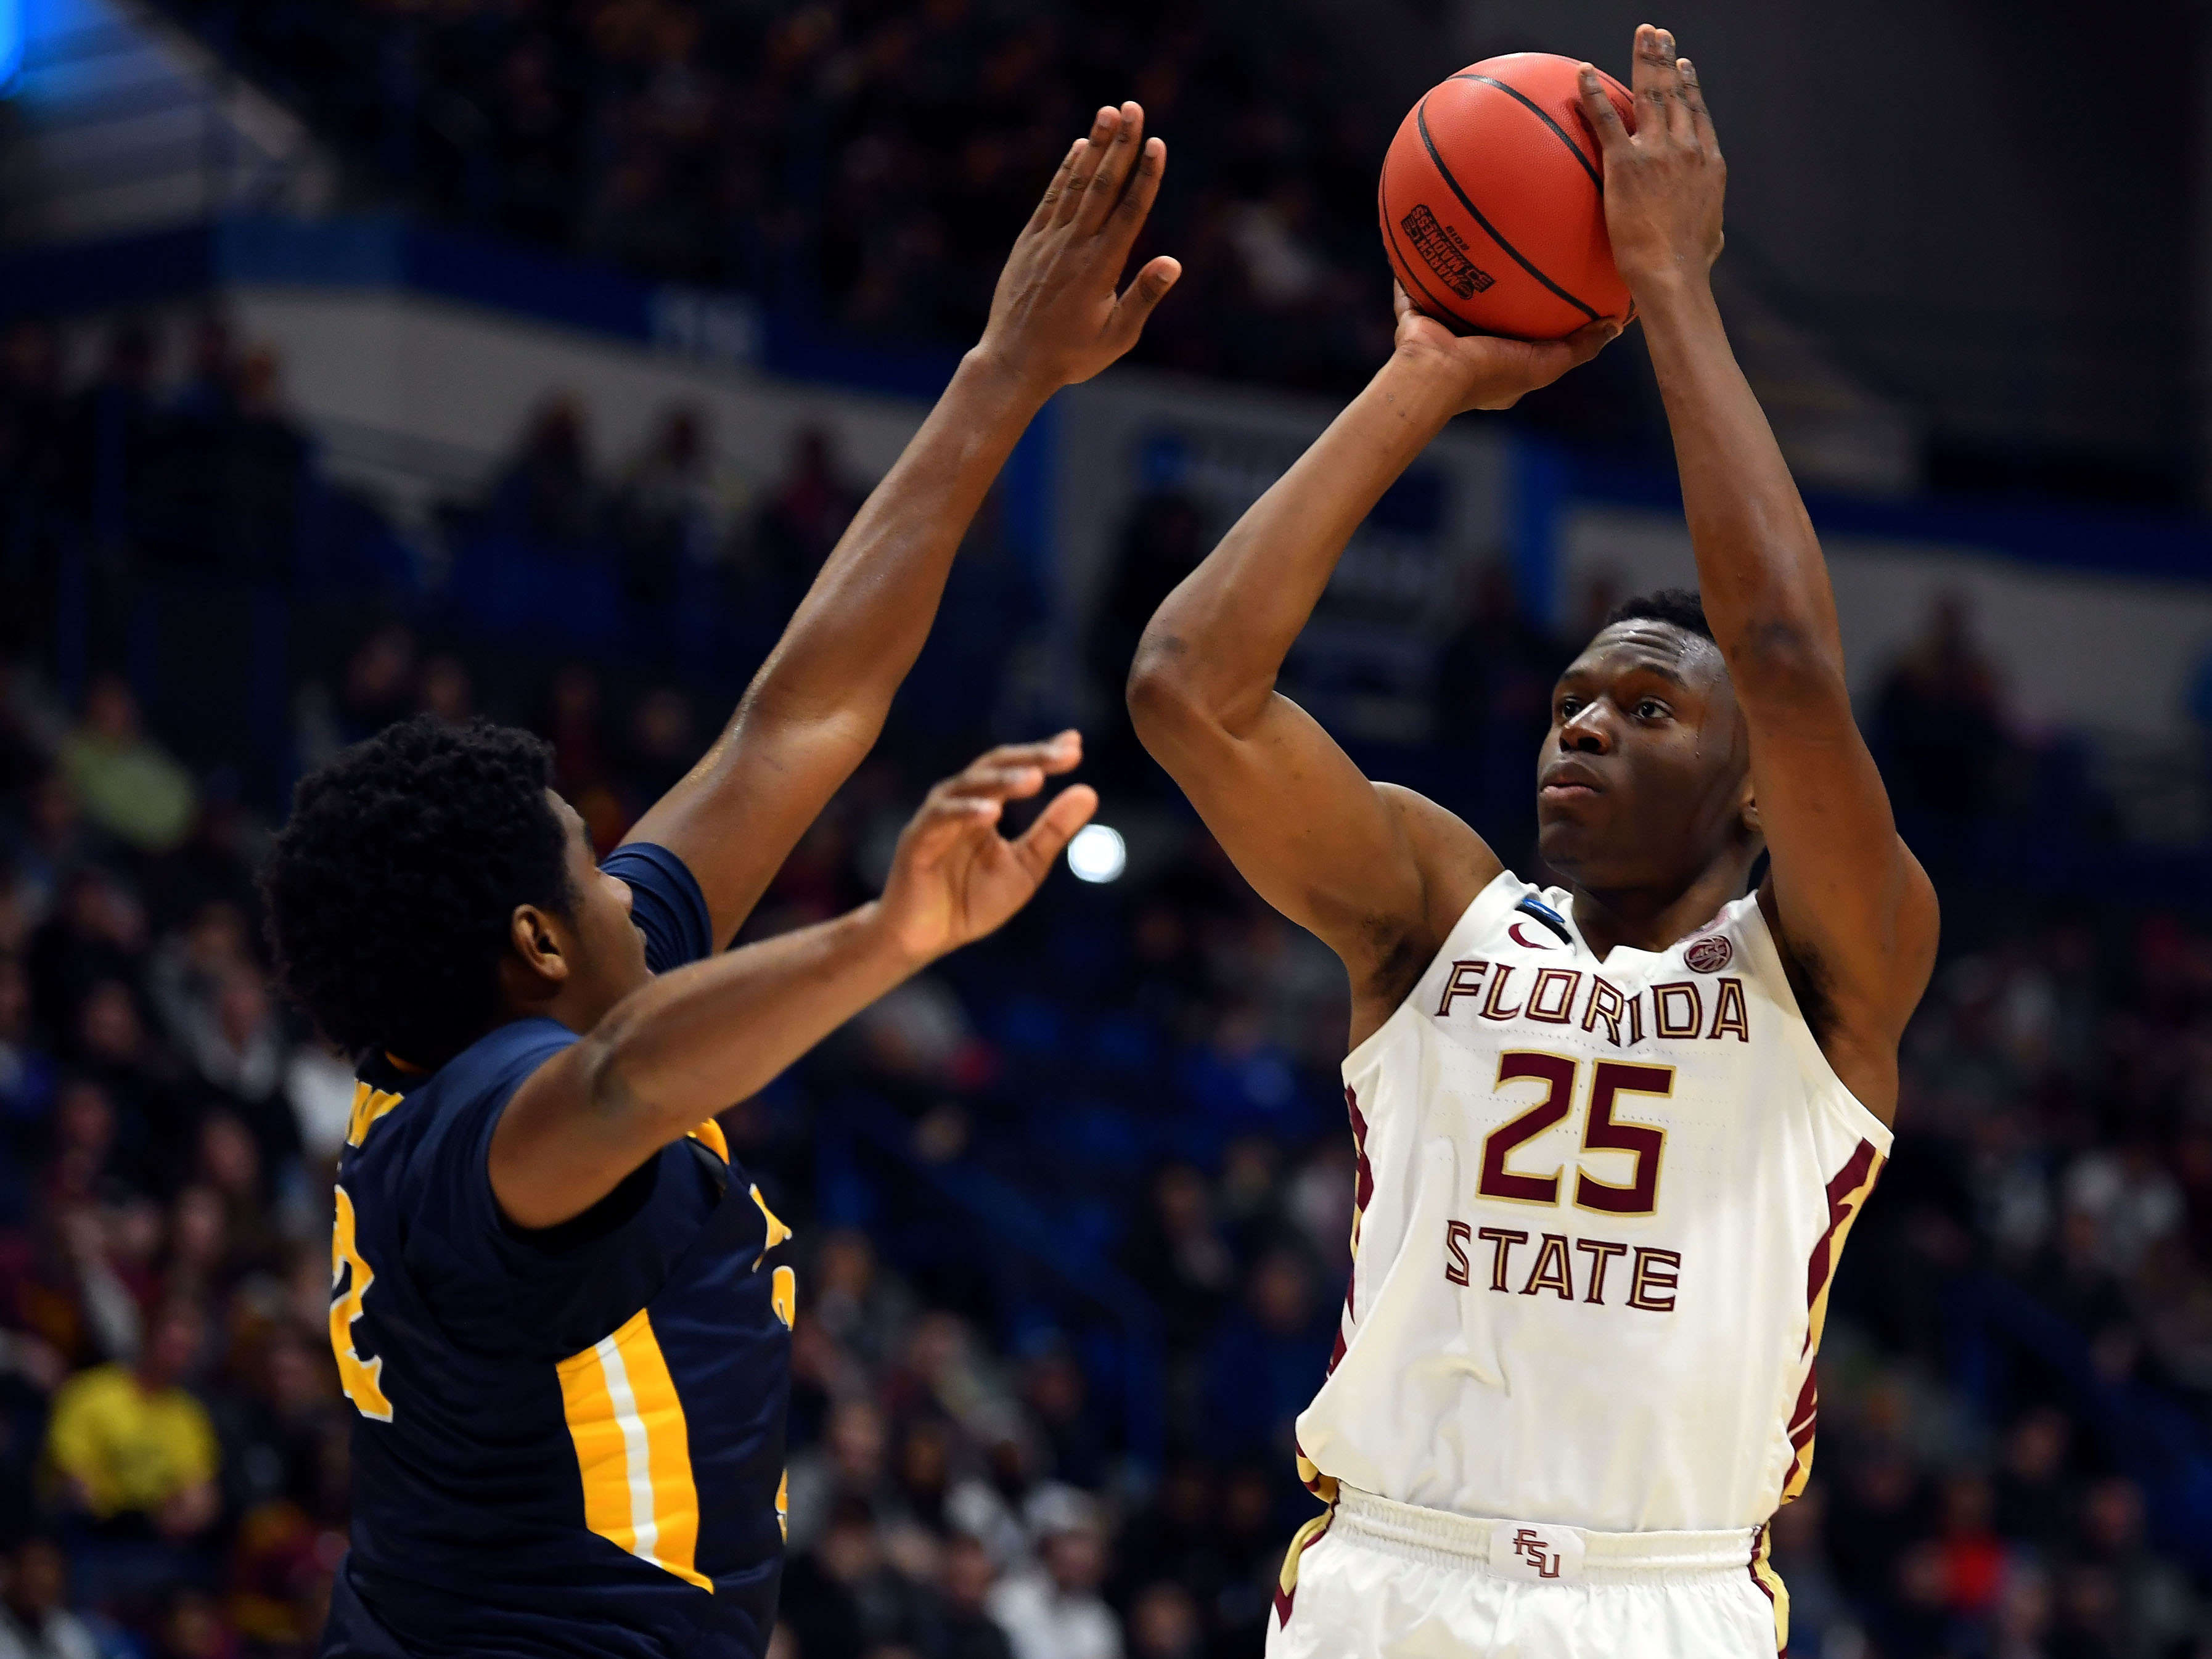 2019 NBA Draft: Why Mfiondu Kabengele makes sense for Sixers